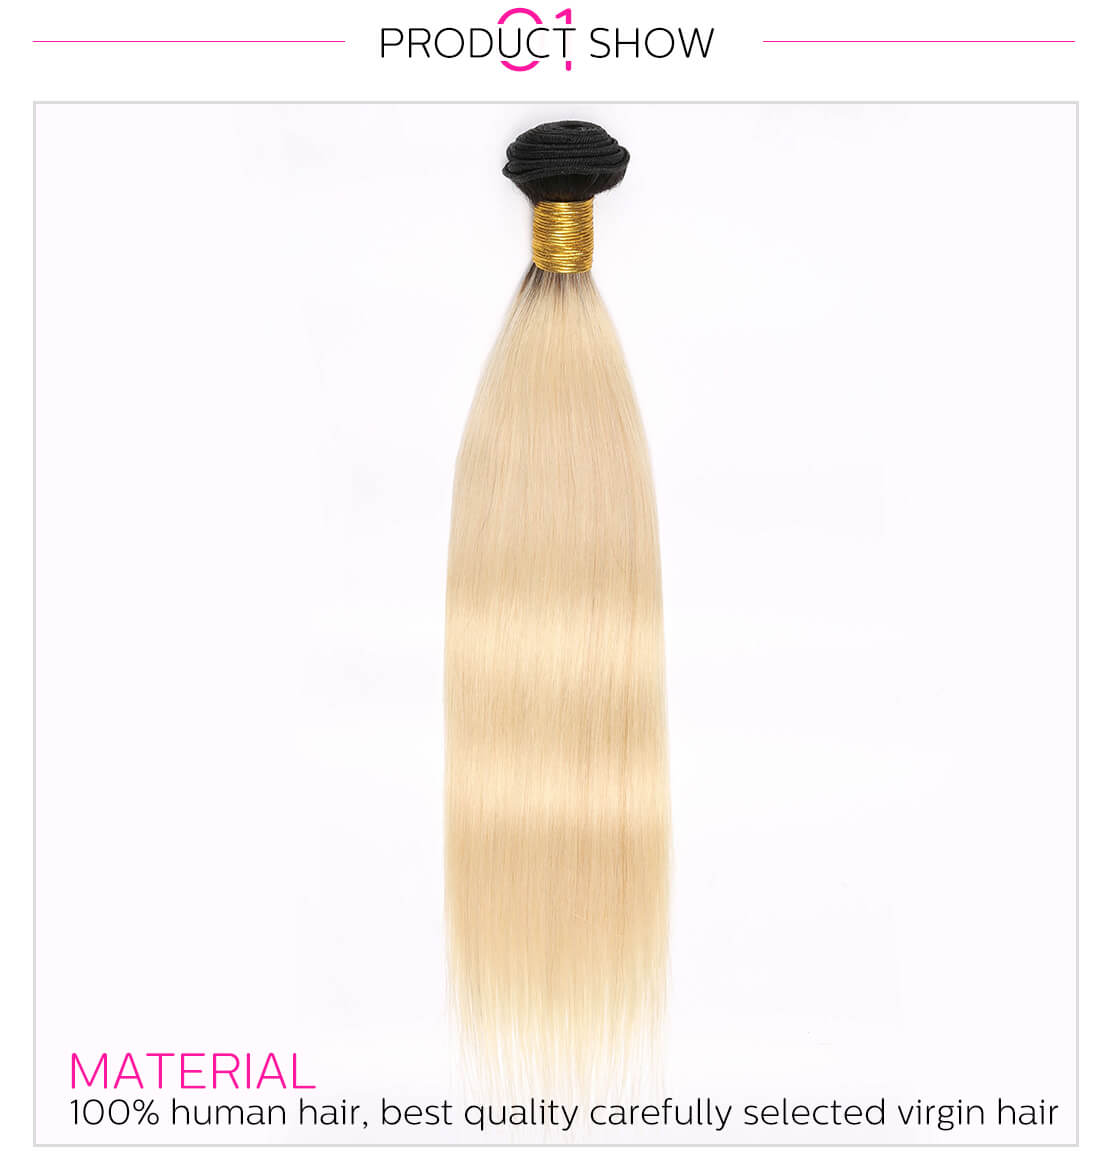 T1B/613 Ombre Blonde Human Hair Weave